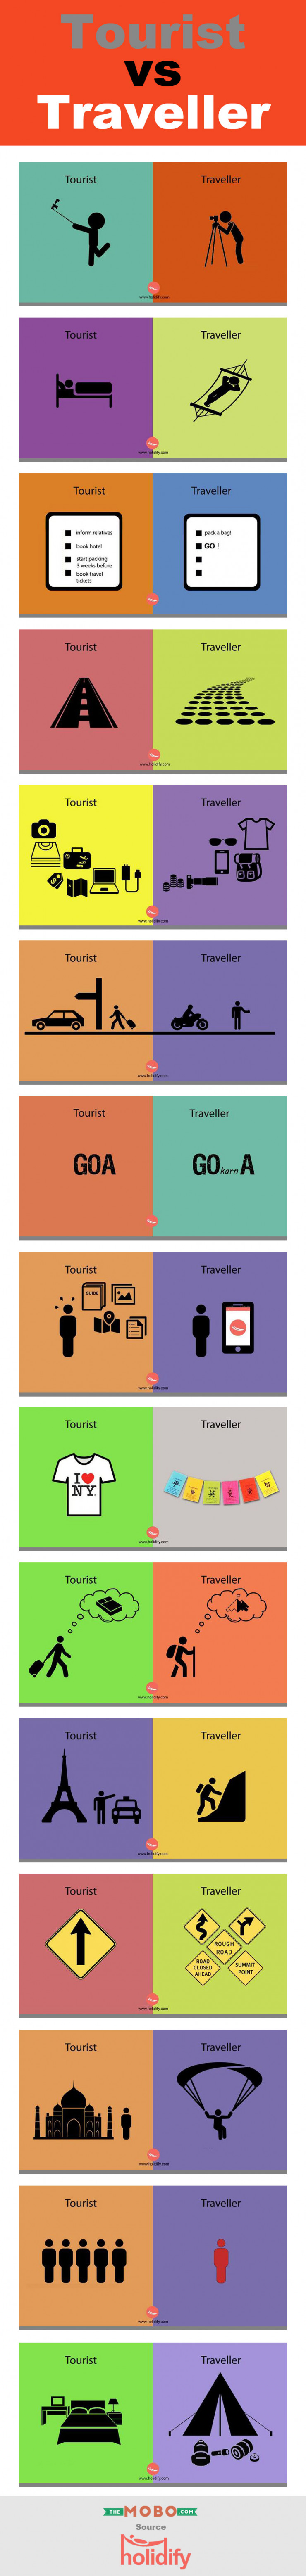 Are You a Tourist Or a Traveller ? This #Infographic Will Tell you